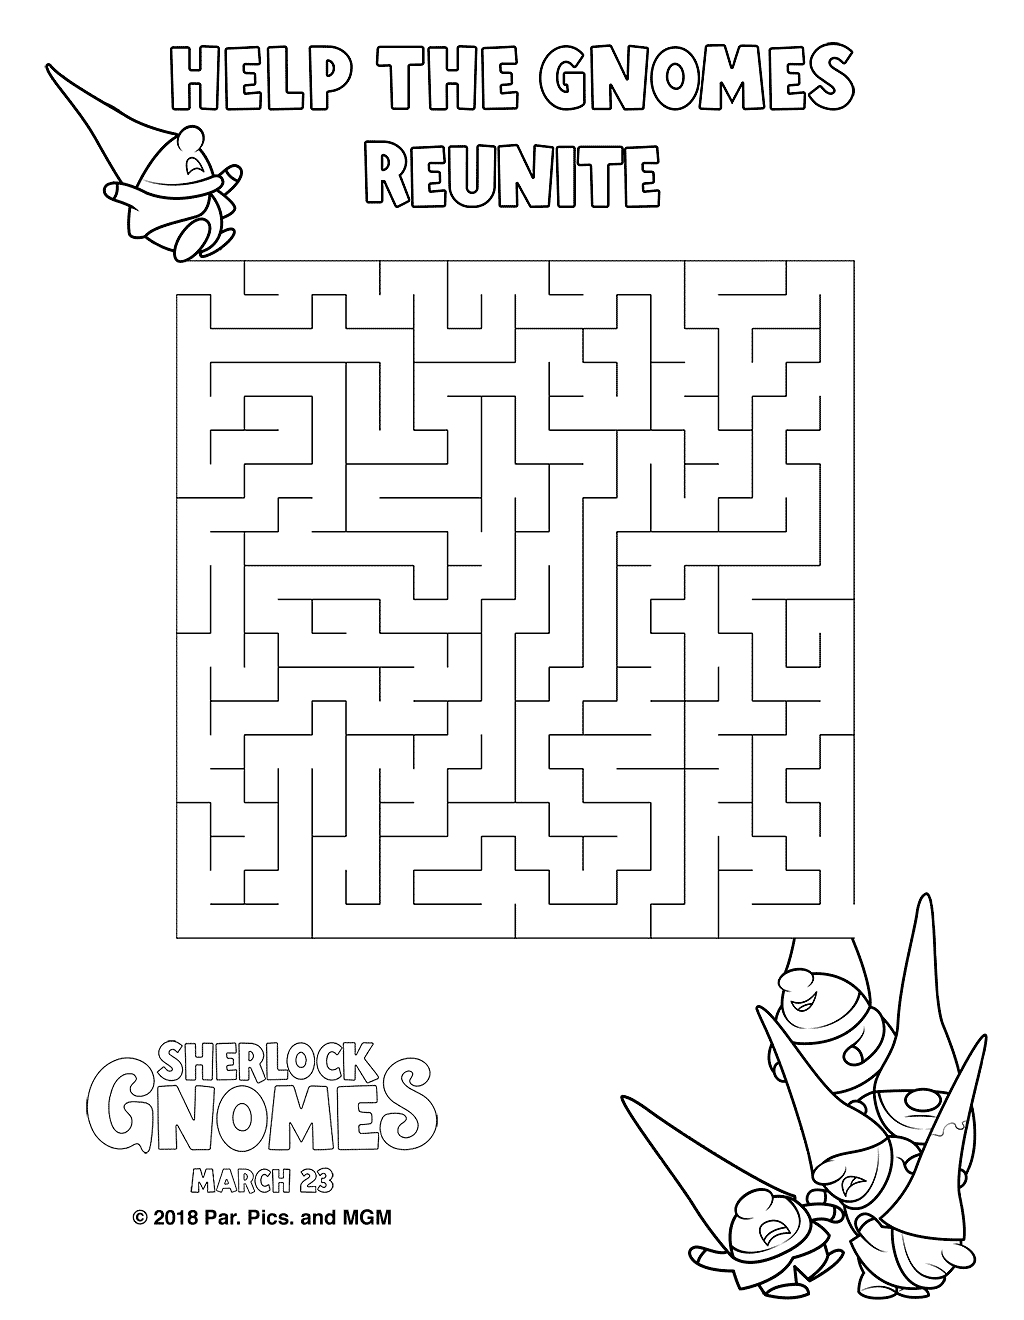 Sherlock Gnomes Coloring Pages Maze printable for free